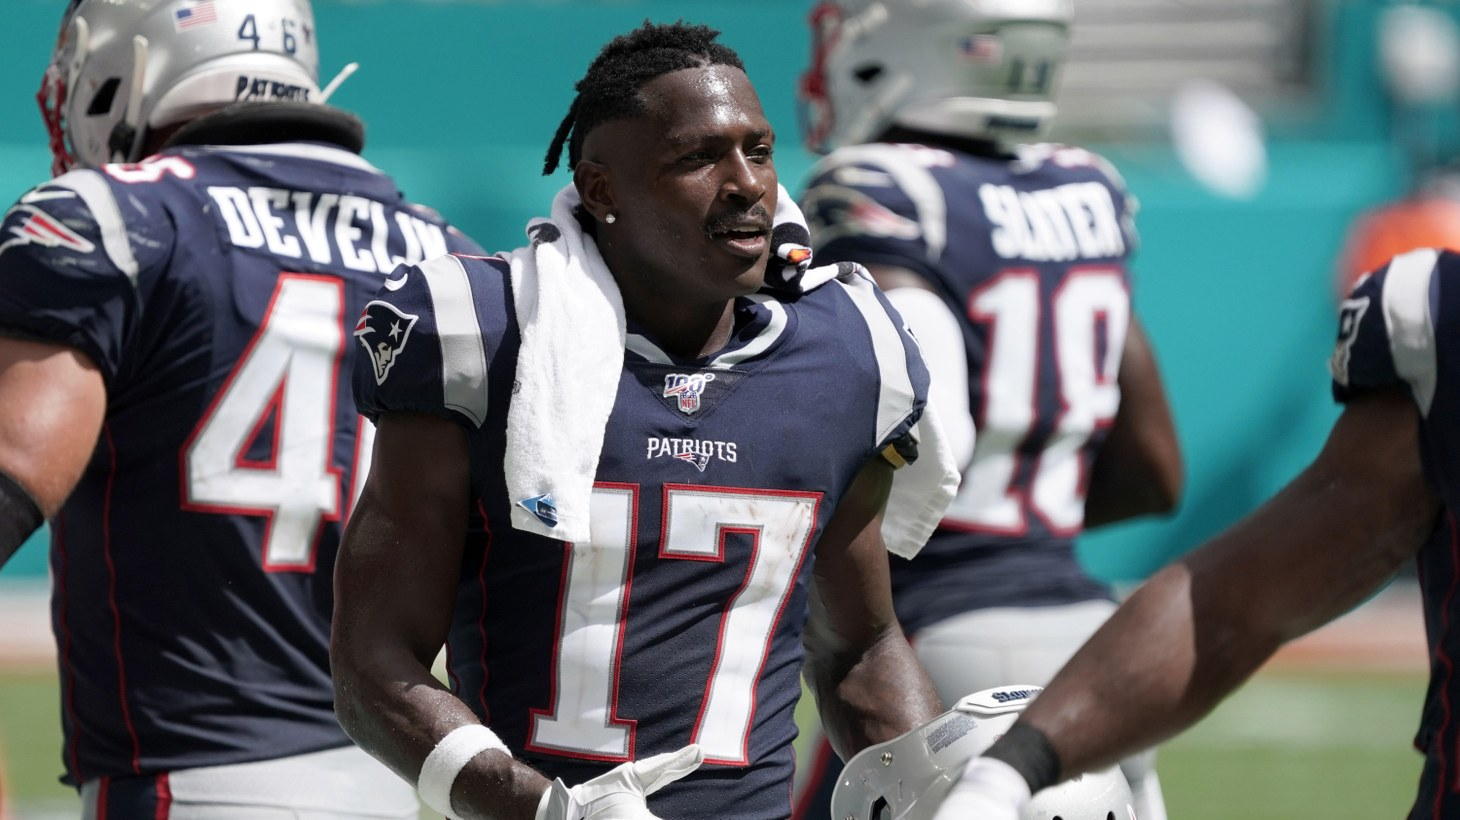 New England Patriots wide receiver Antonio Brown (17) watches from the sidelines in the second half against the Miami Dolphins at Hard Rock Stadium. The Patriots defeated the Dolphins 43-0. Sep 15, 2019; Miami Gardens, FL, USA.